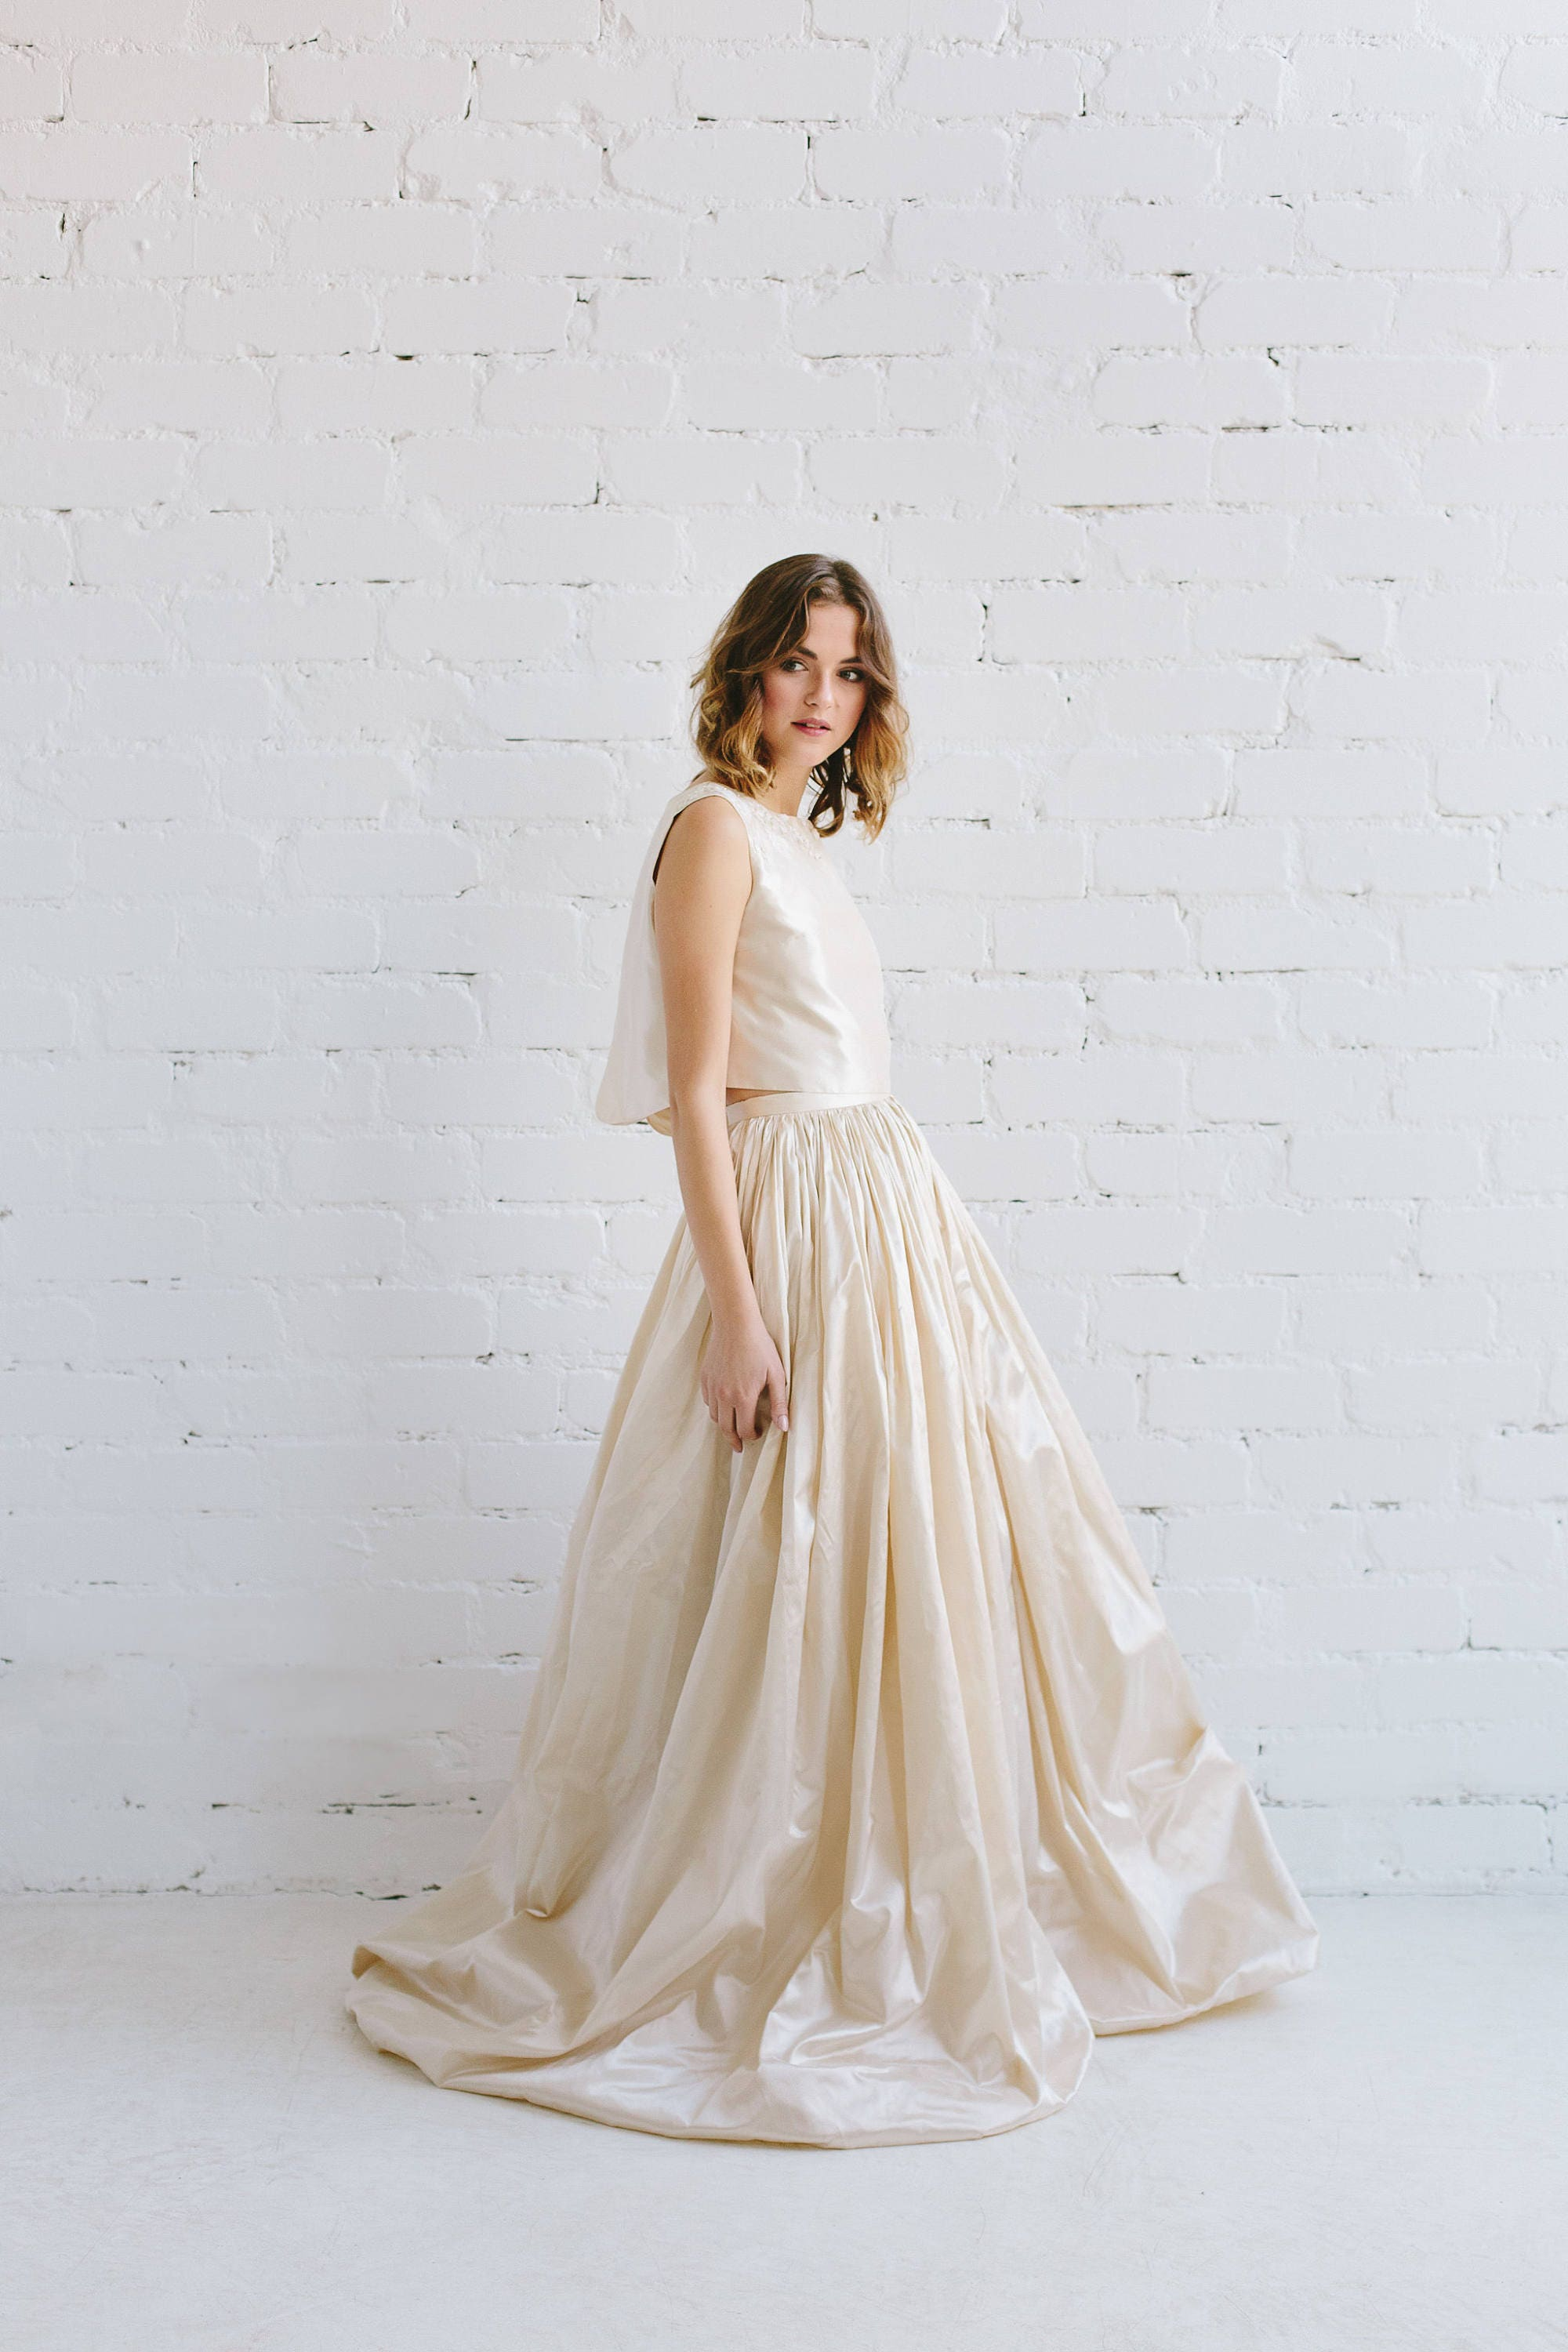 Gold Wedding Dresses.Silk Wedding Dress Two Piece Wedding Dress Bridal Crop Top Champagne Gold Taffeta Gown Bohemian Wedding Dress Open Back Wedding Dress